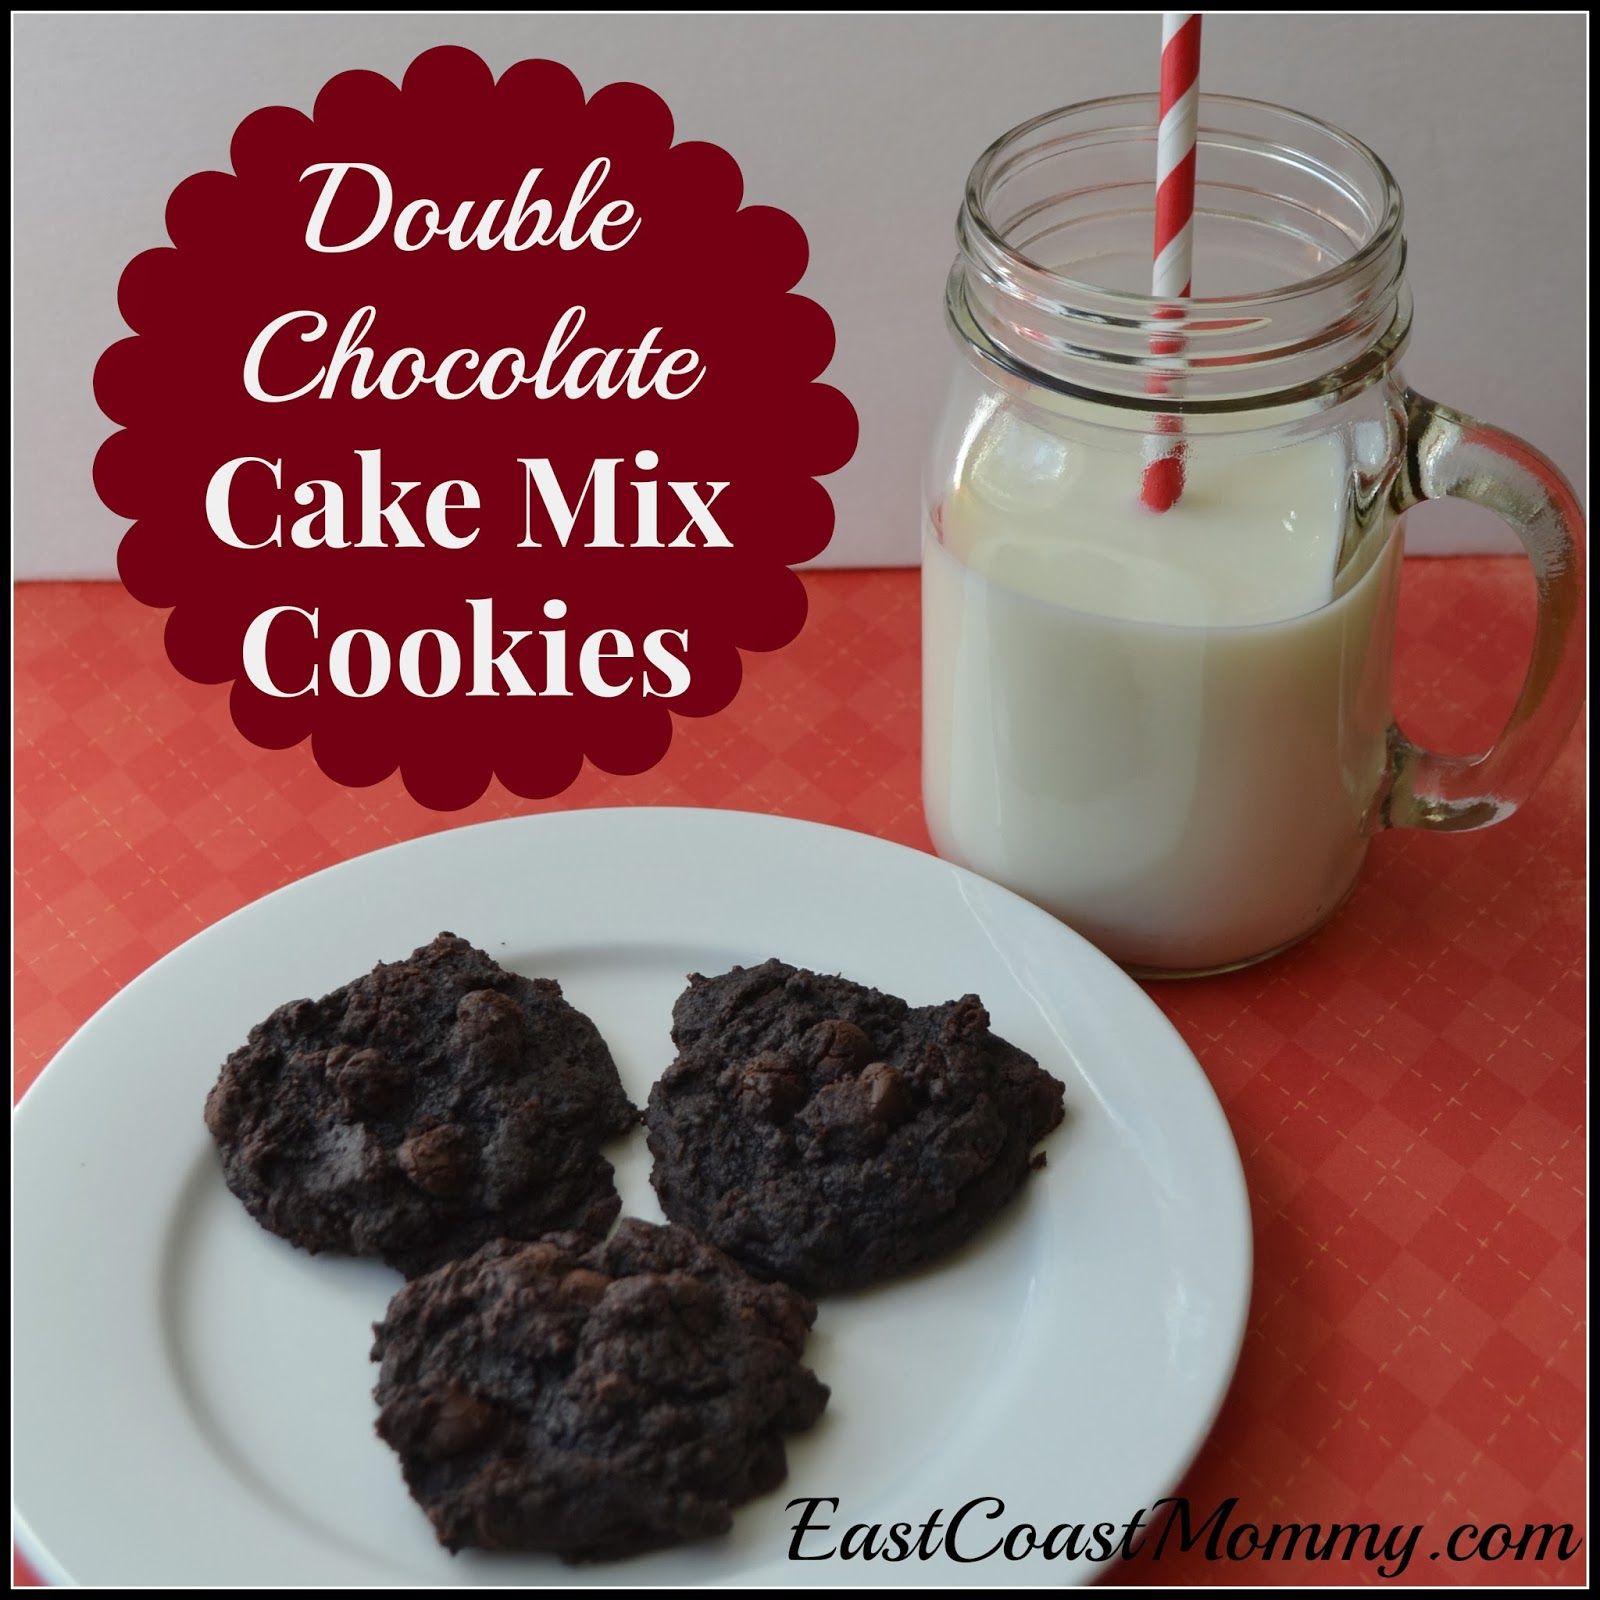 East Coast Mommy: Double Chocolate Cake Mix Cookies